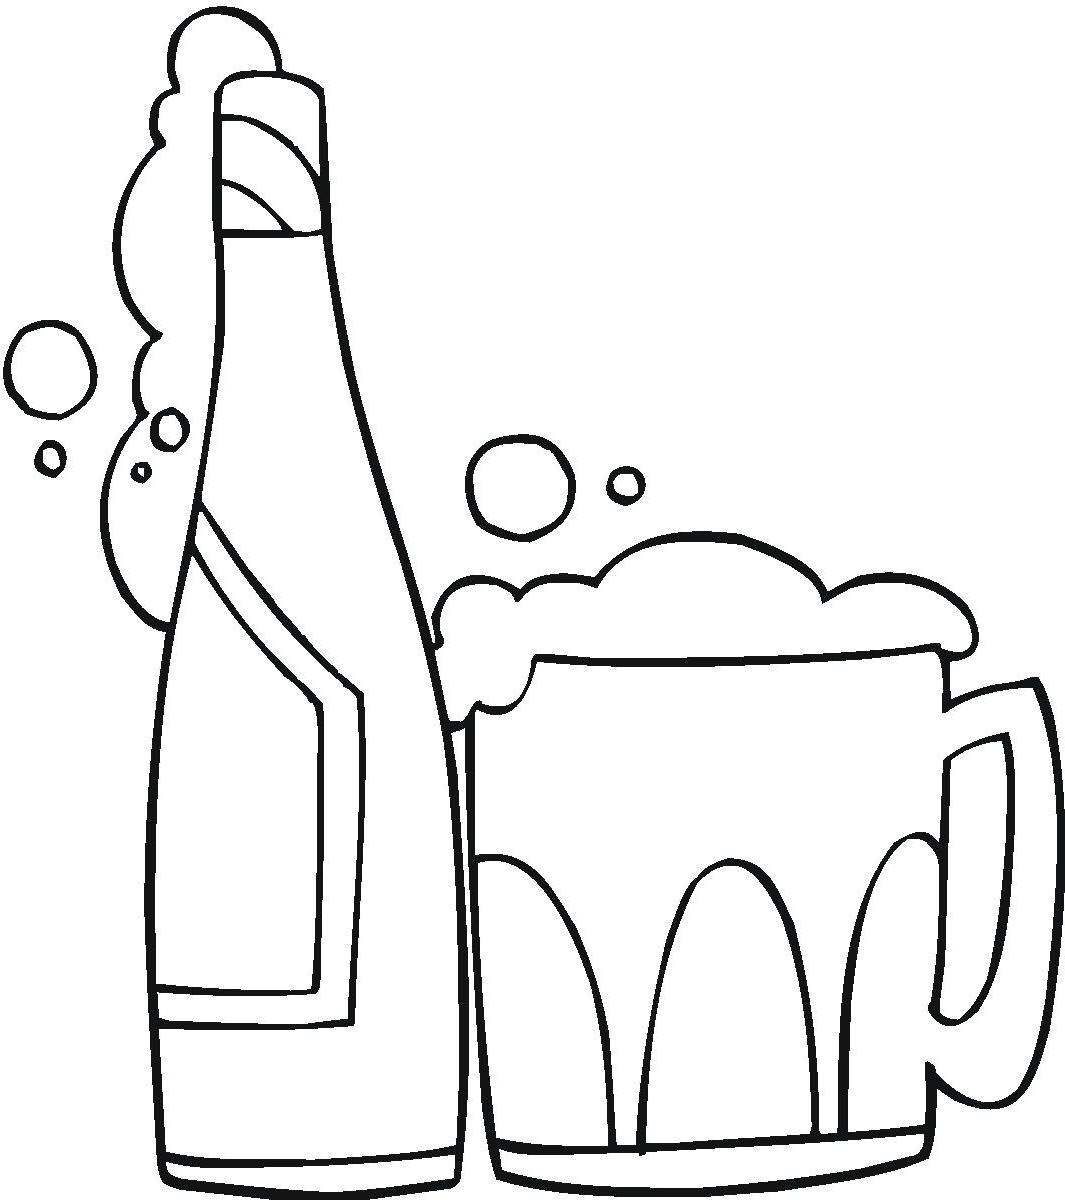 Alcohol clipart black and white 2 » Clipart Station.